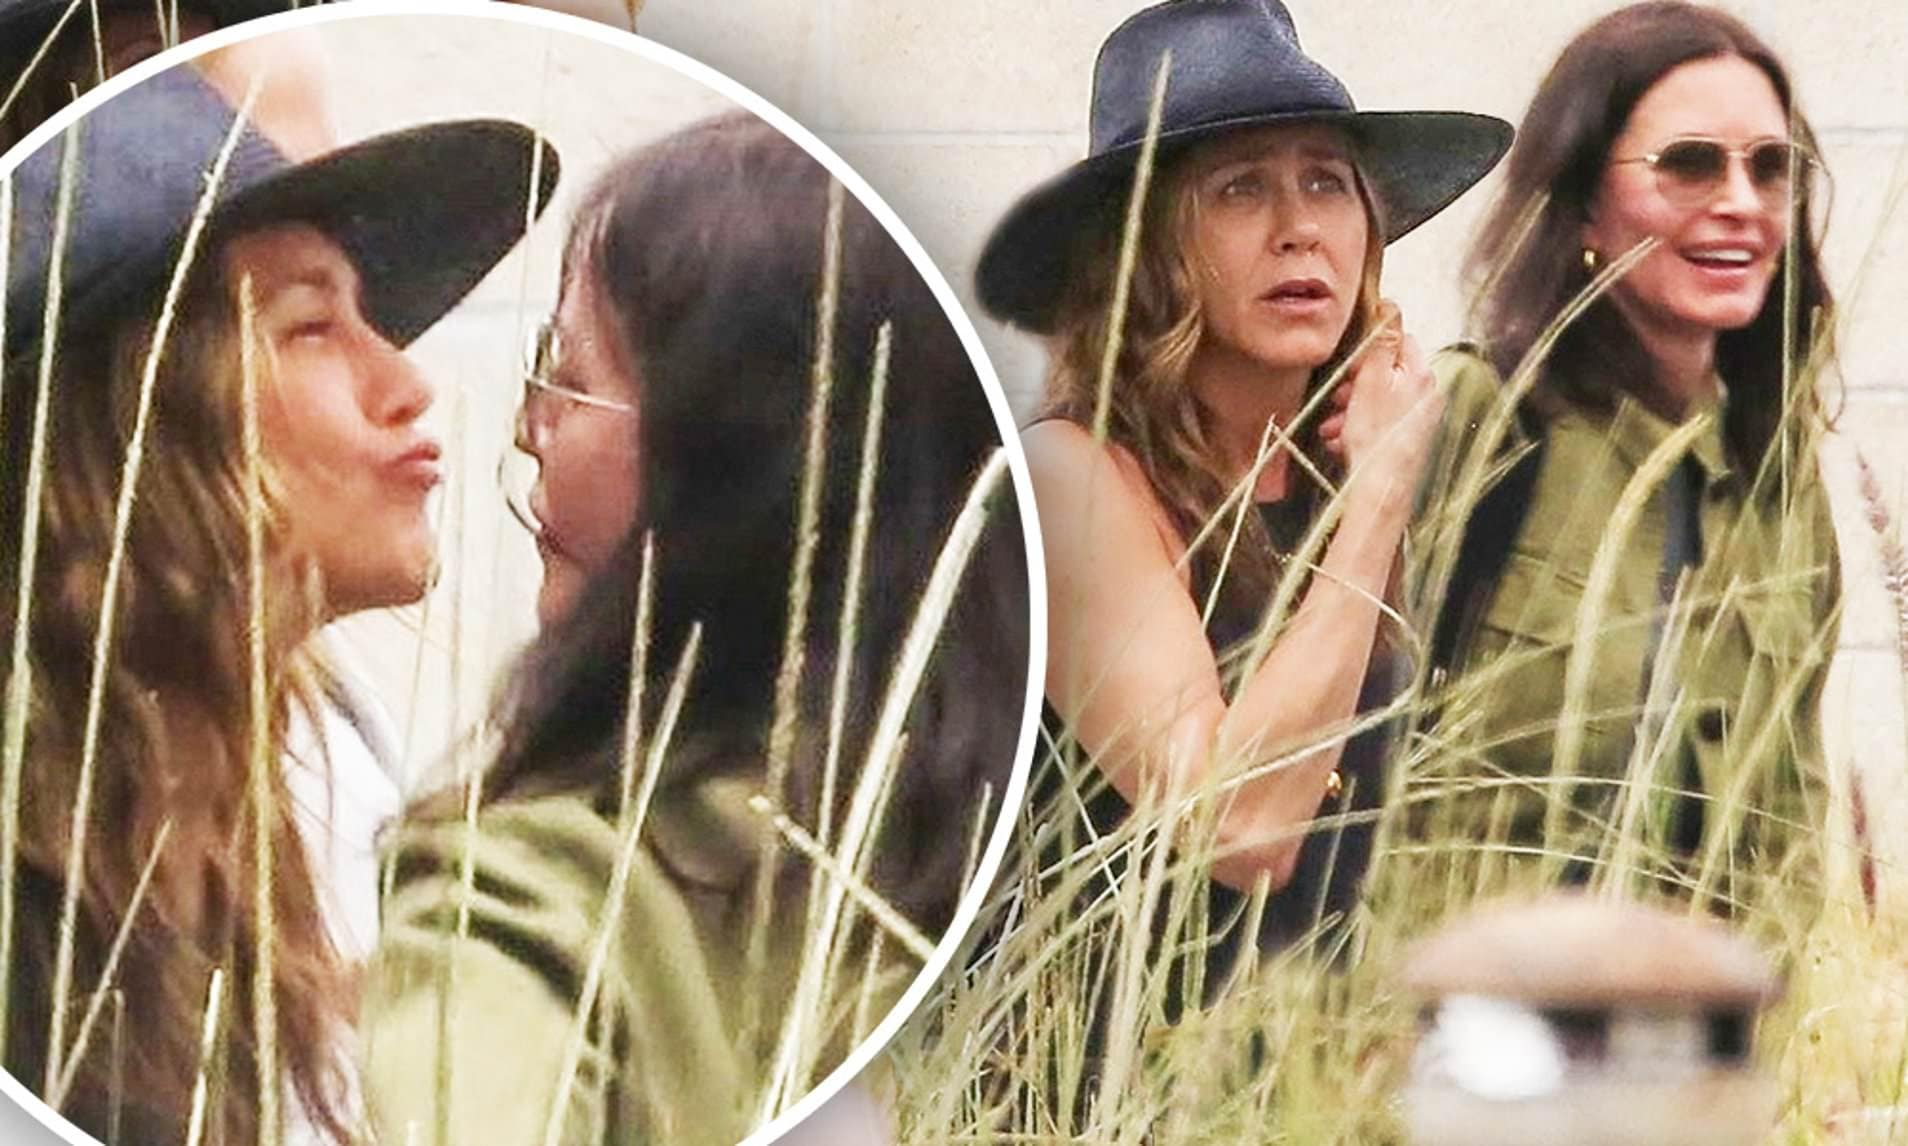 jennifer aniston and courteney cox kissing each other outdoors to greet